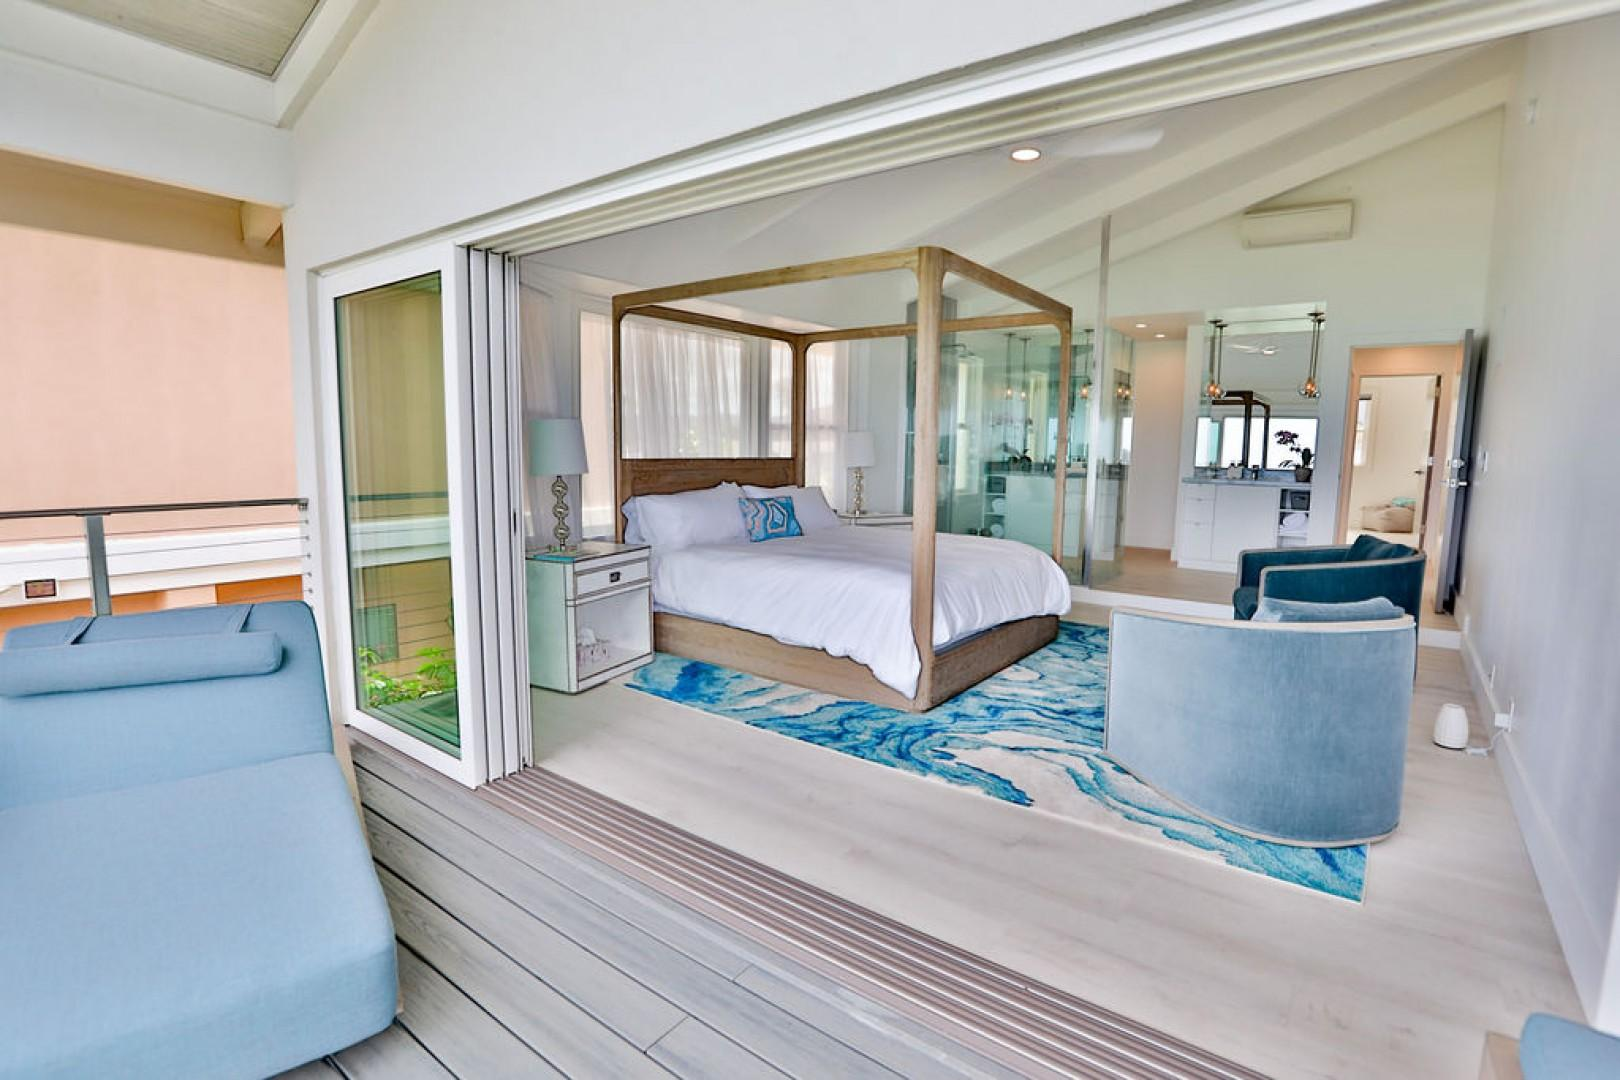 Master Bedroom with lanai acess